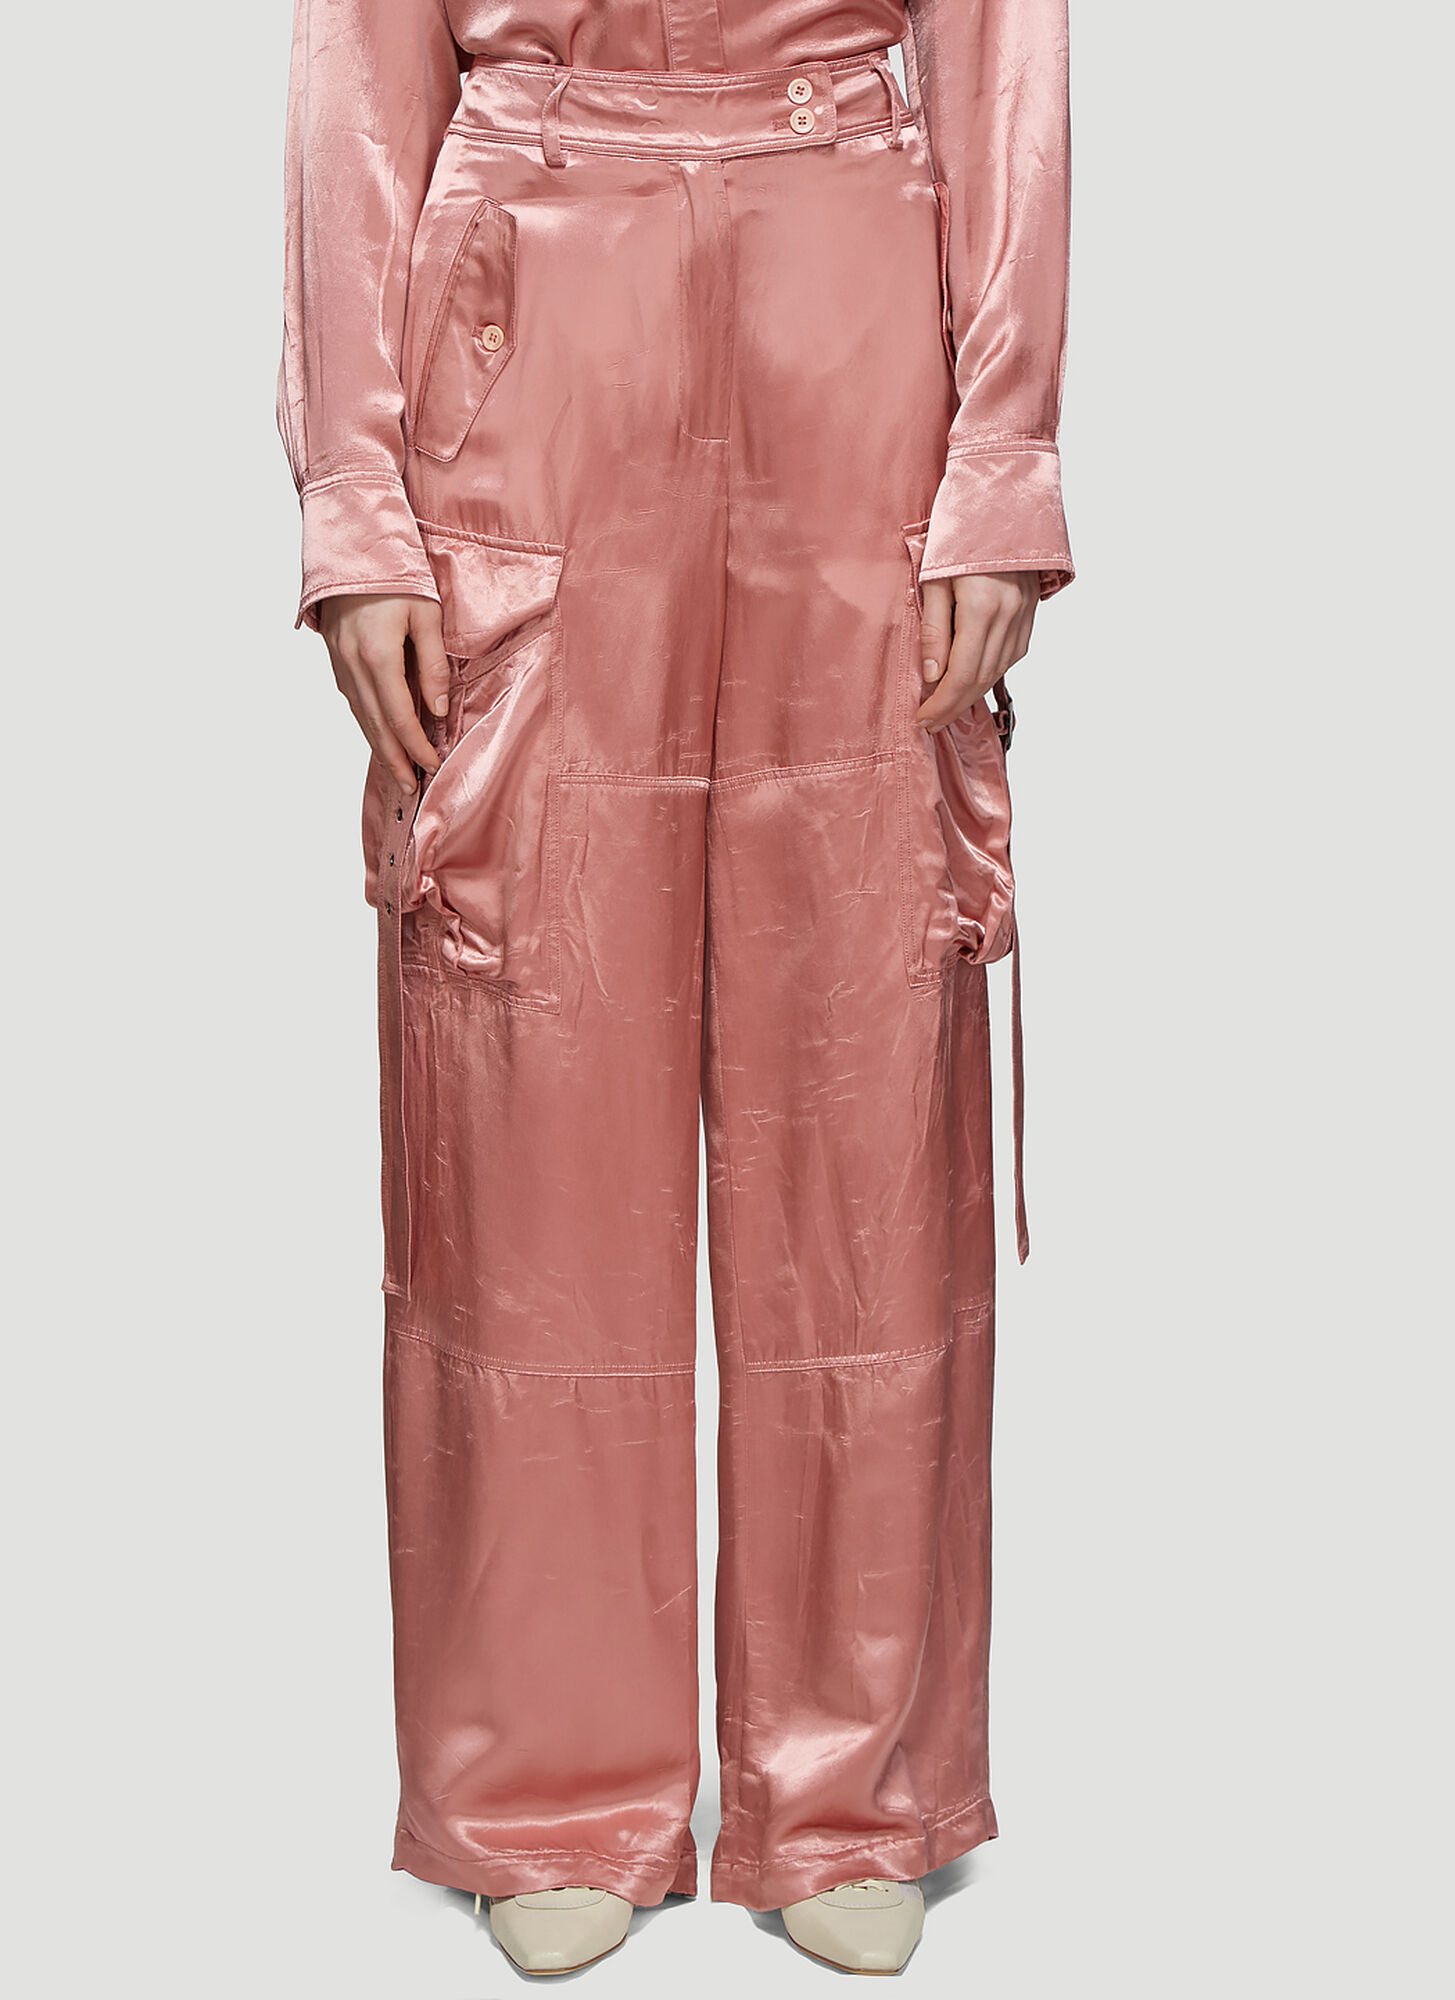 Sies Marjan Sammie Washed Satin Cargo Pants in Pink